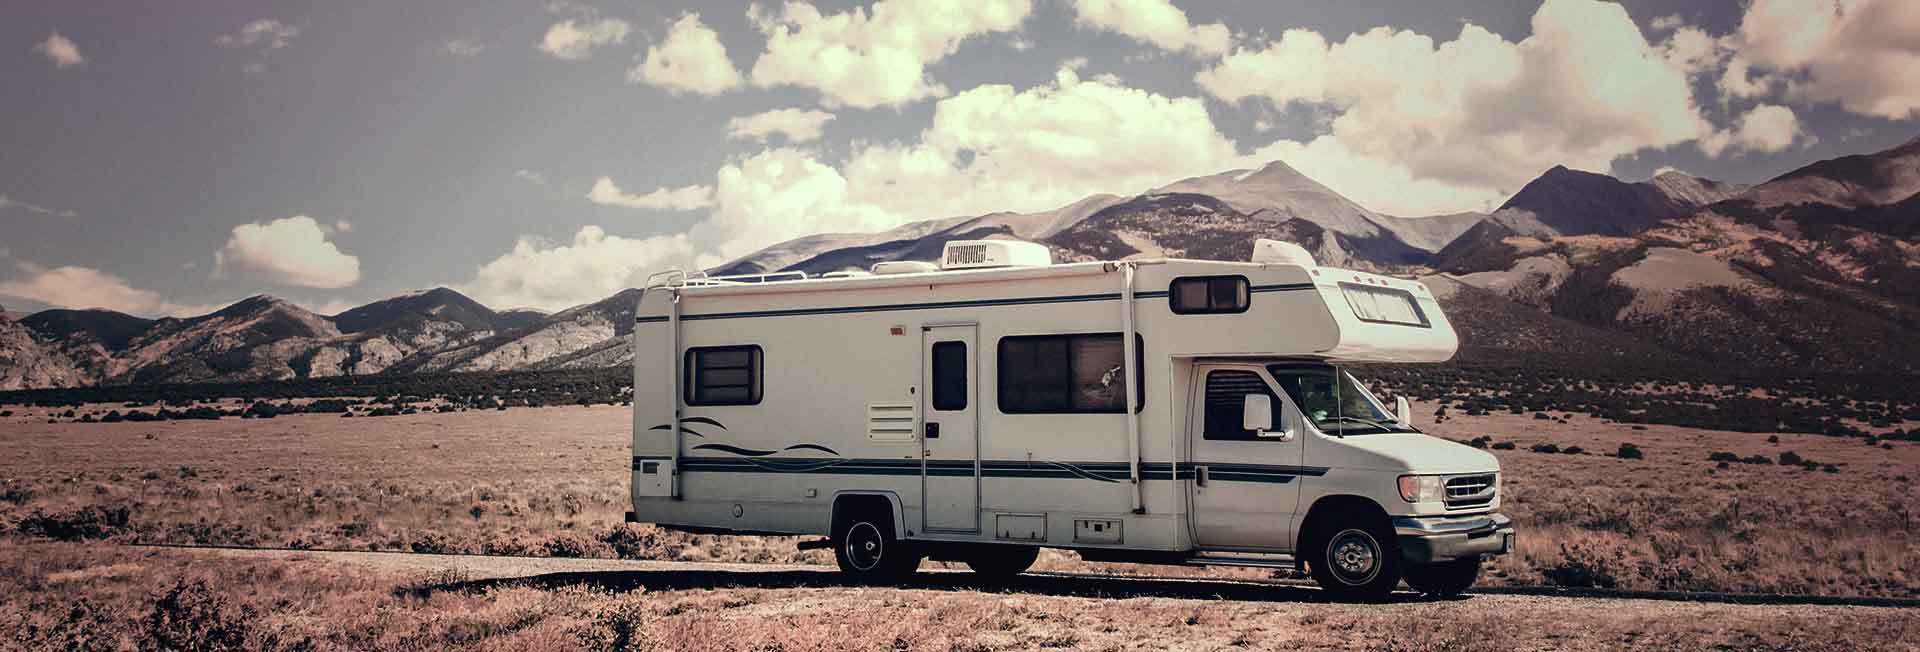 RVs & Campers